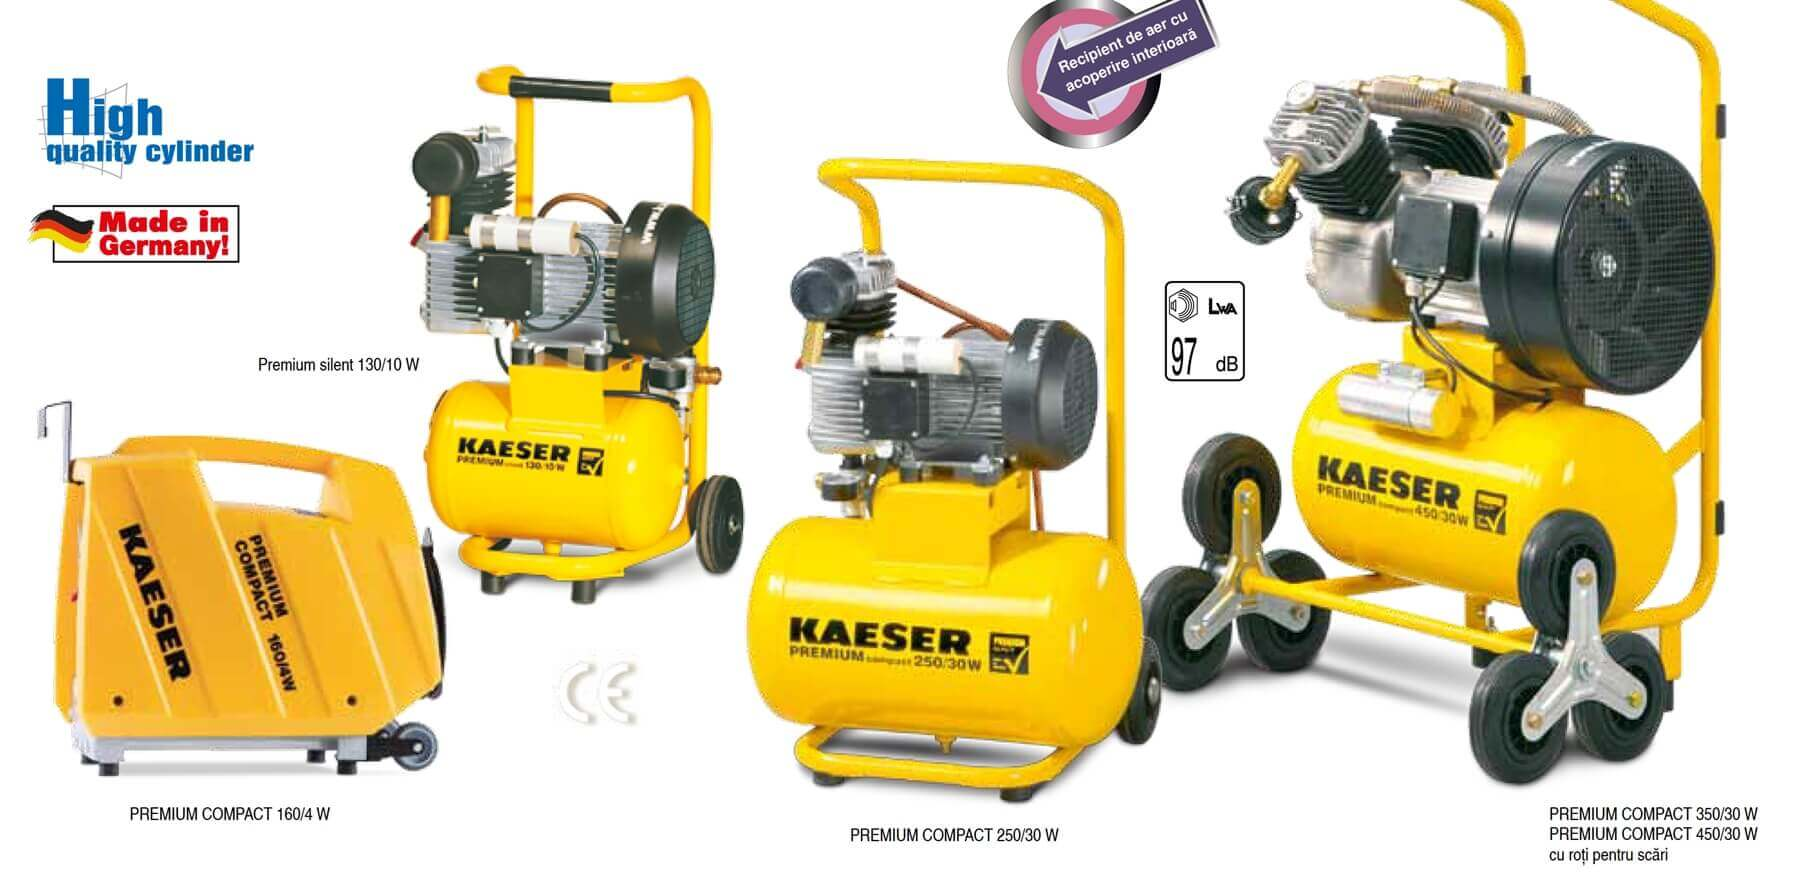 Reciprocating compressors kaeser